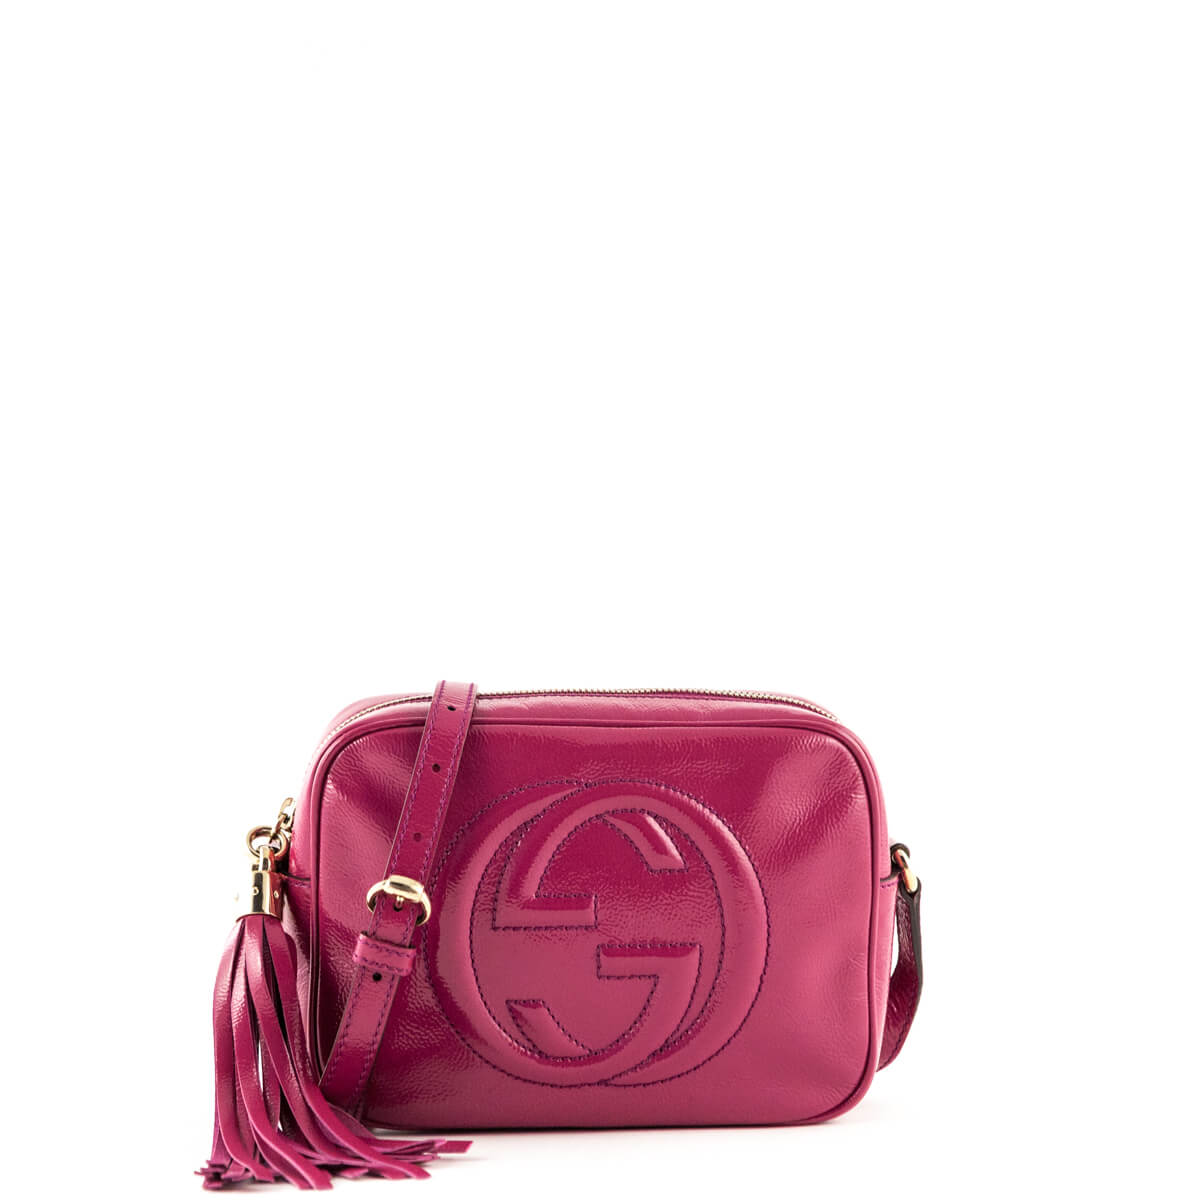 bbbac5428f19 Gucci Pink Patent Soho Disco - LOVE that BAG - Preowned Authentic Designer  Handbags ...